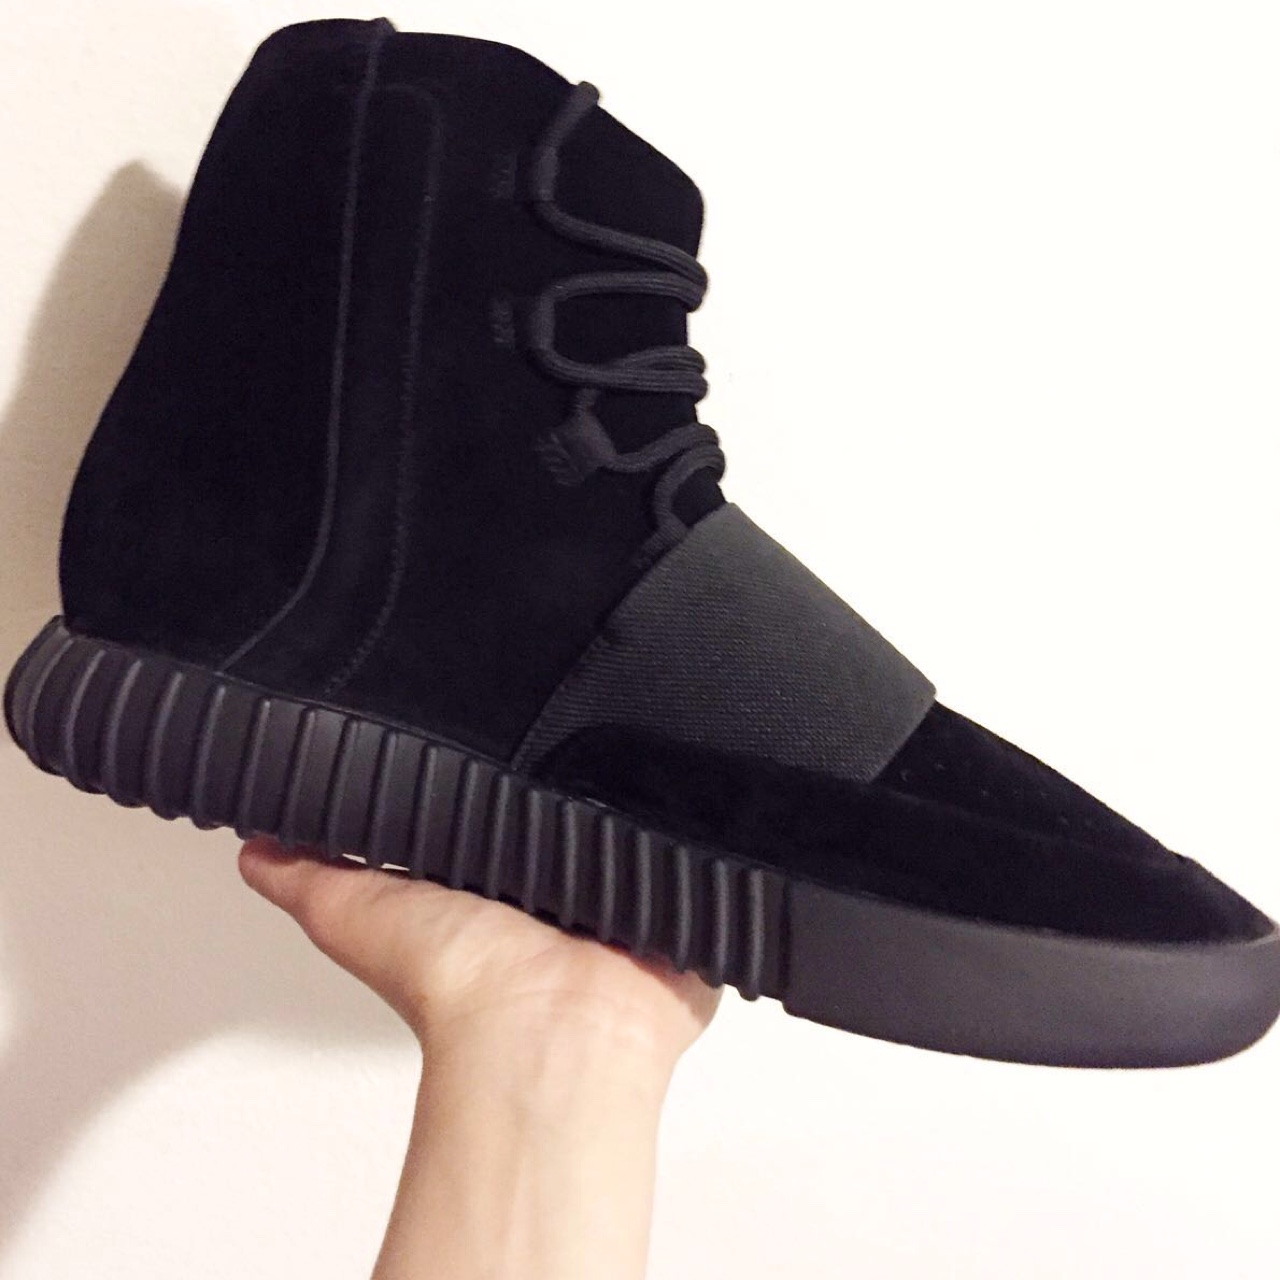 low priced 638d5 3f520 ADIDAS YEEZY BOOST 750 PIRATE BLACK €1,000.00... - Depop